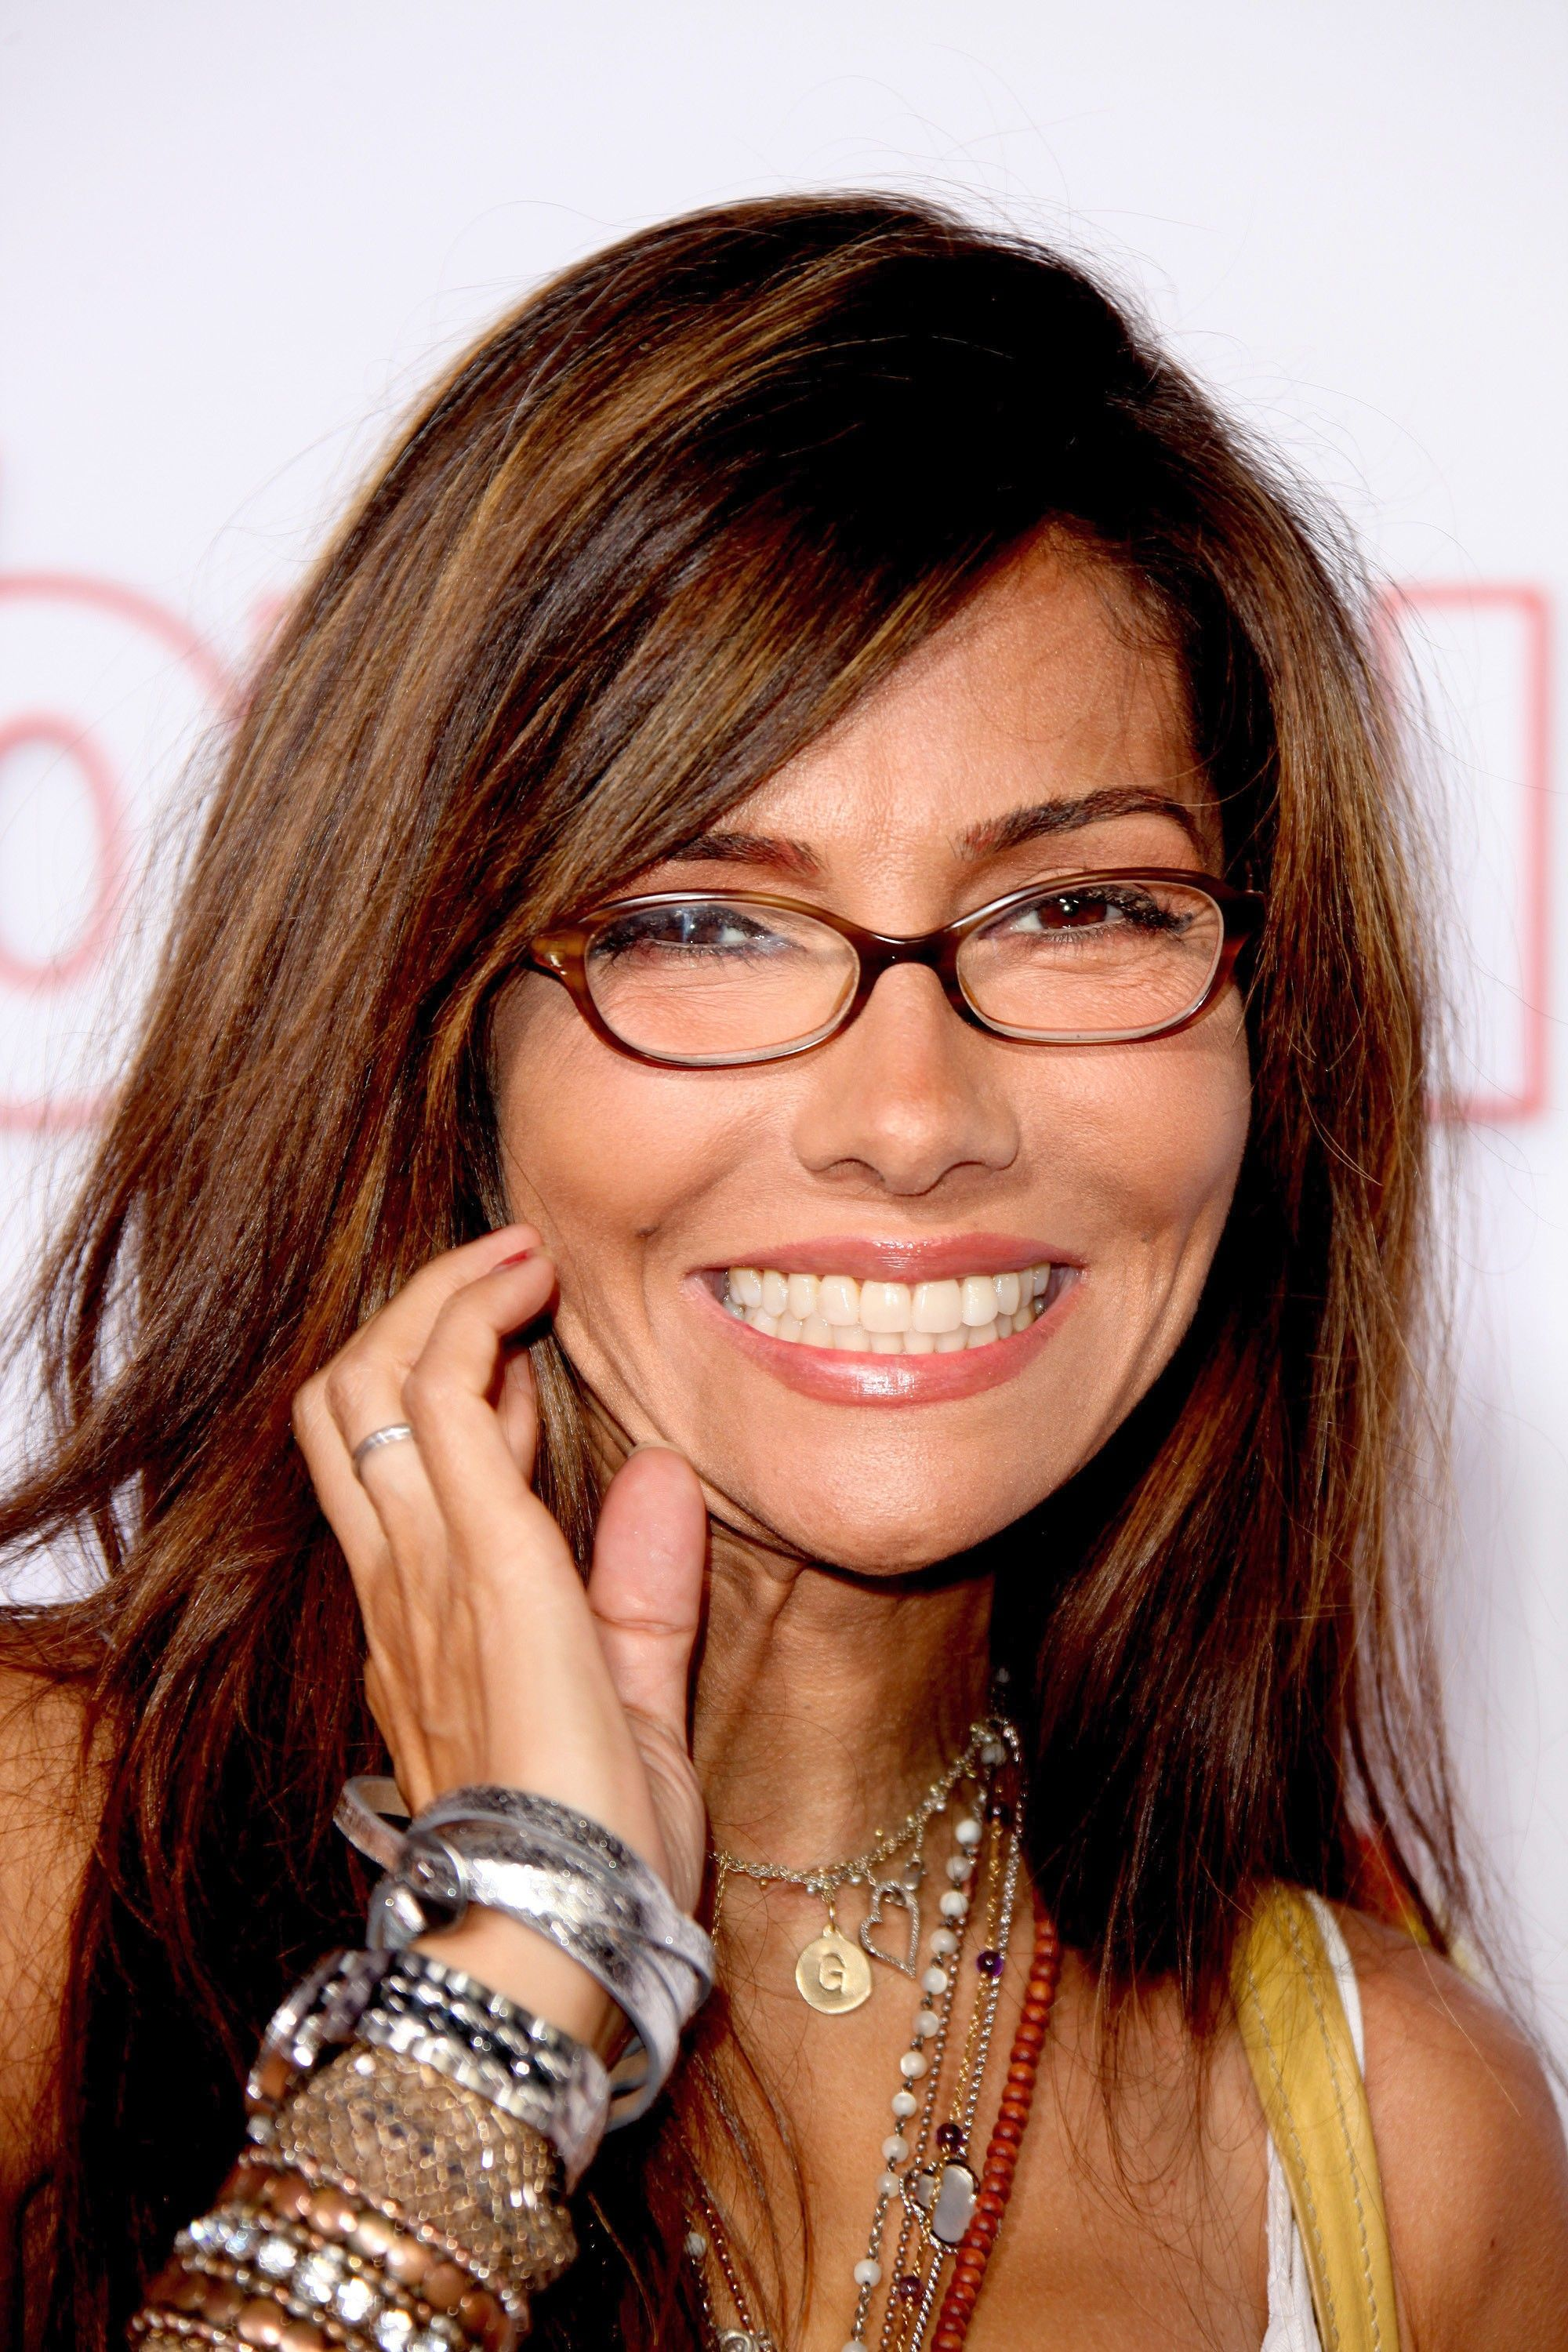 vanessa marcil twittervanessa marcil wiki, vanessa marcil 90210, vanessa marcil son, vanessa marcil the rock, vanessa marcil instagram, vanessa marcil young, vanessa marcil, vanessa marcil 2015, vanessa marcil twitter, vanessa marcil 2014, vanessa marcil brian austin green, vanessa marcil beverly hills 90210, vanessa marcil giovinazzo, vanessa marcil las vegas, vanessa marcil engaged, vanessa marcil net worth, vanessa marcil prince